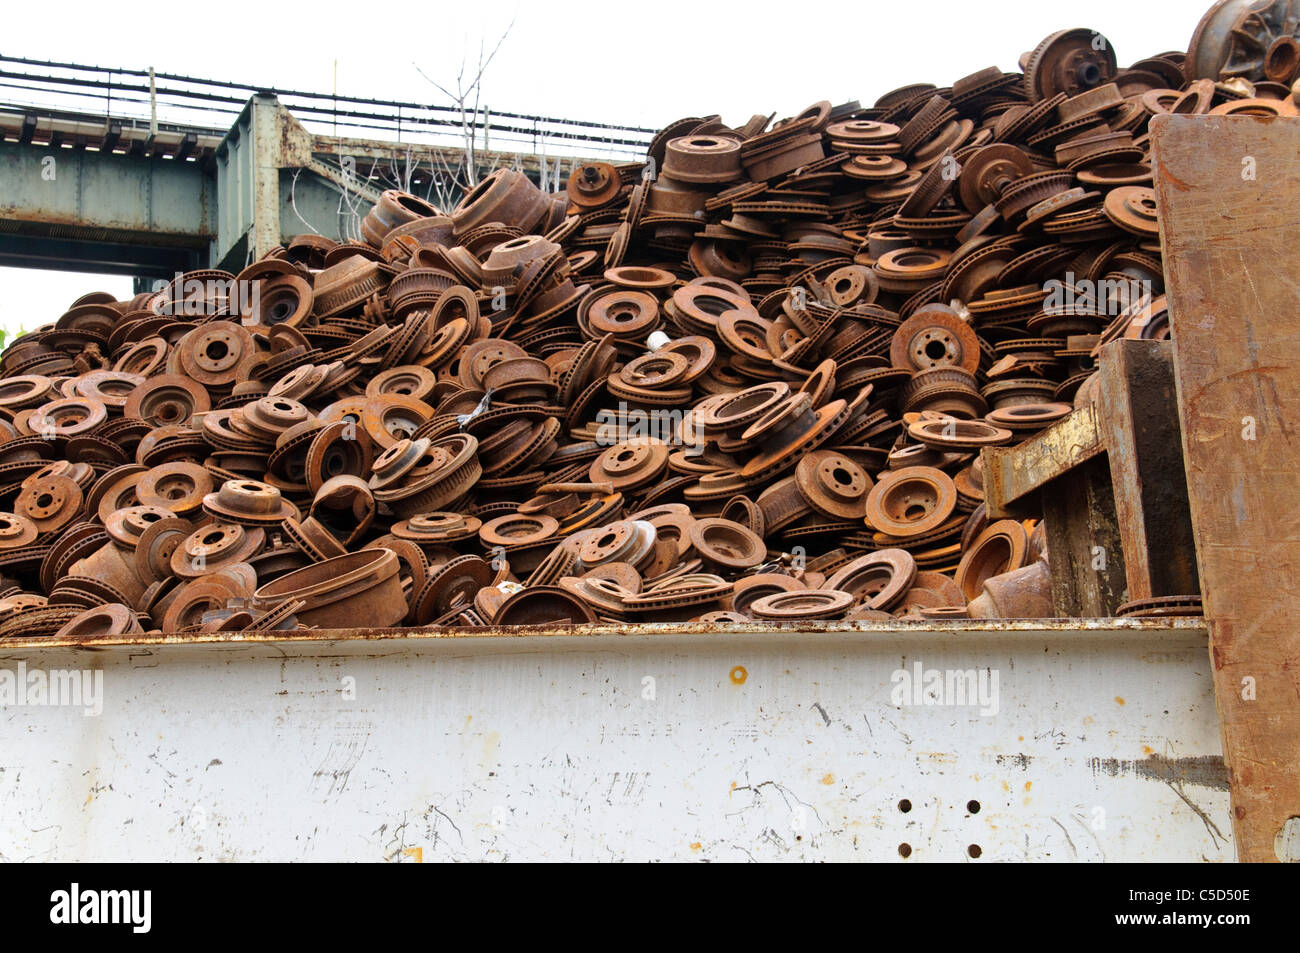 Rotors, Scrap Metal Junk Yard, Brooklyn, New York City - Stock Image